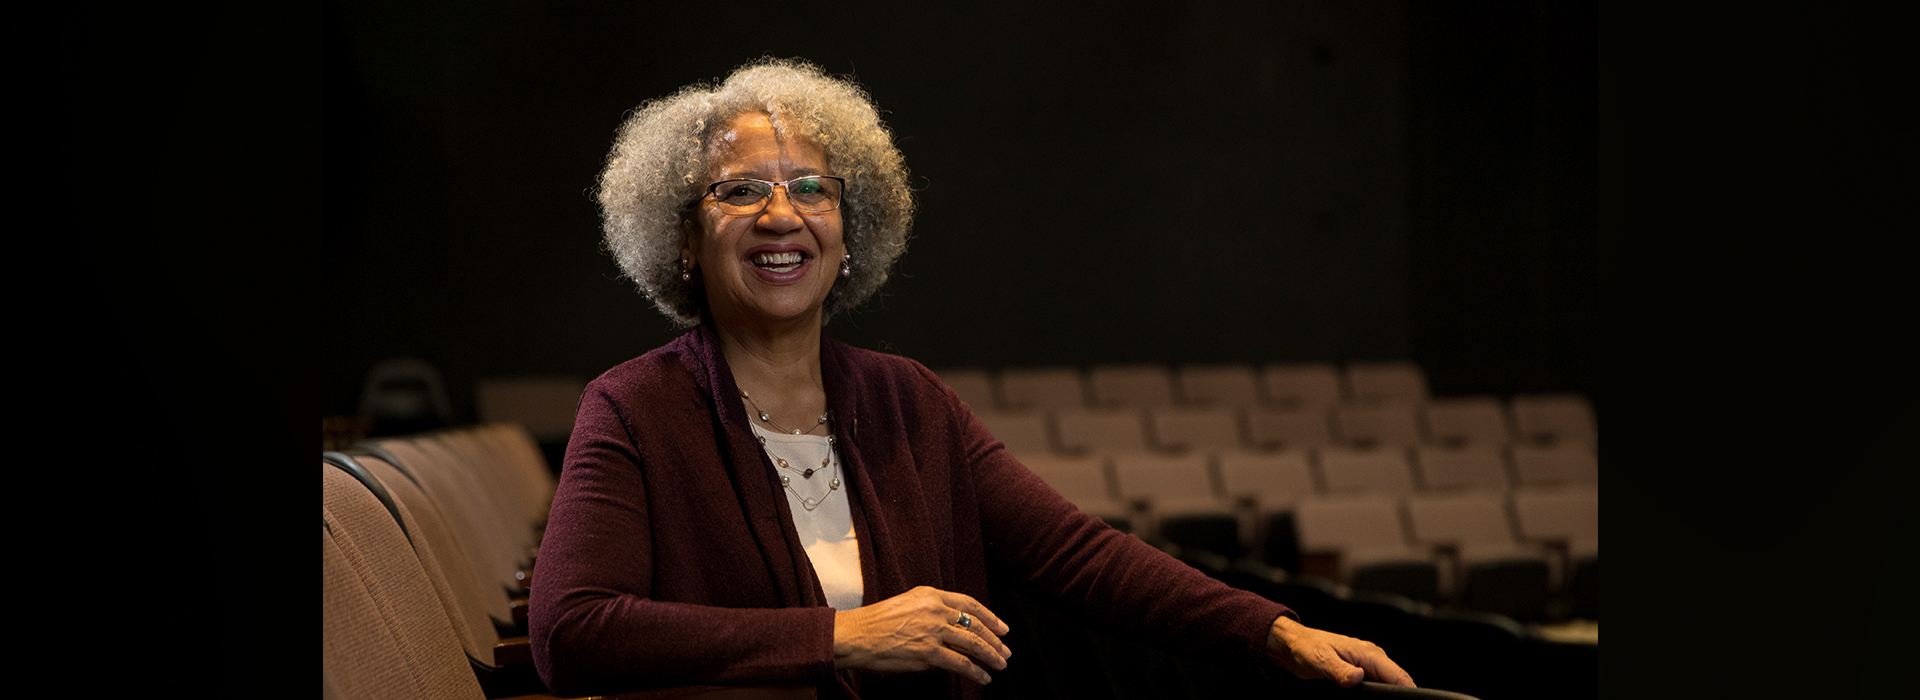 Cal State San Bernardino professor to be inducted into College of Fellows of the American Theatre